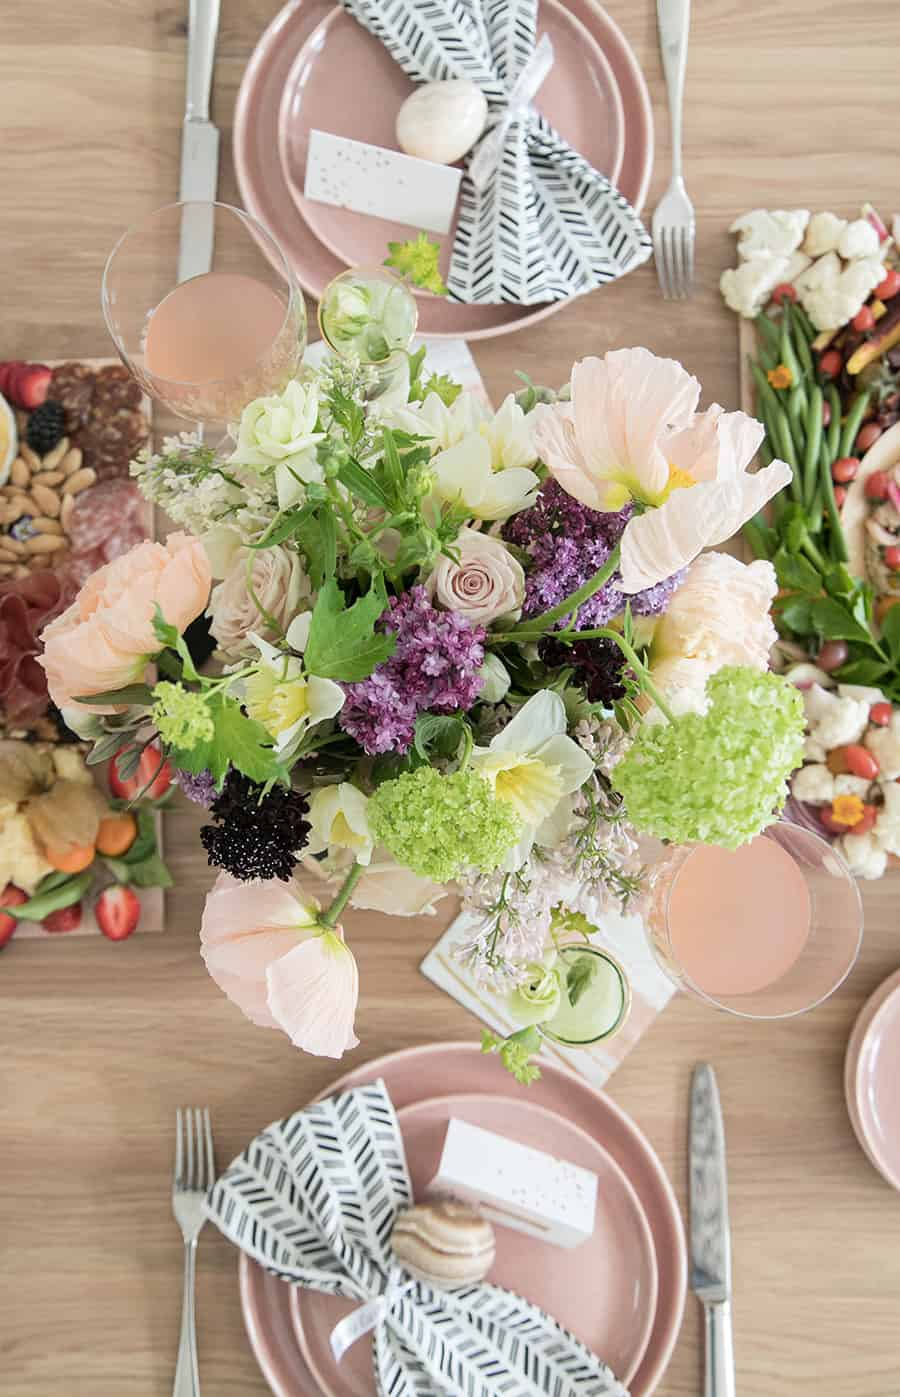 Overhead of flowers on a table with pink plates and Easter eggs.